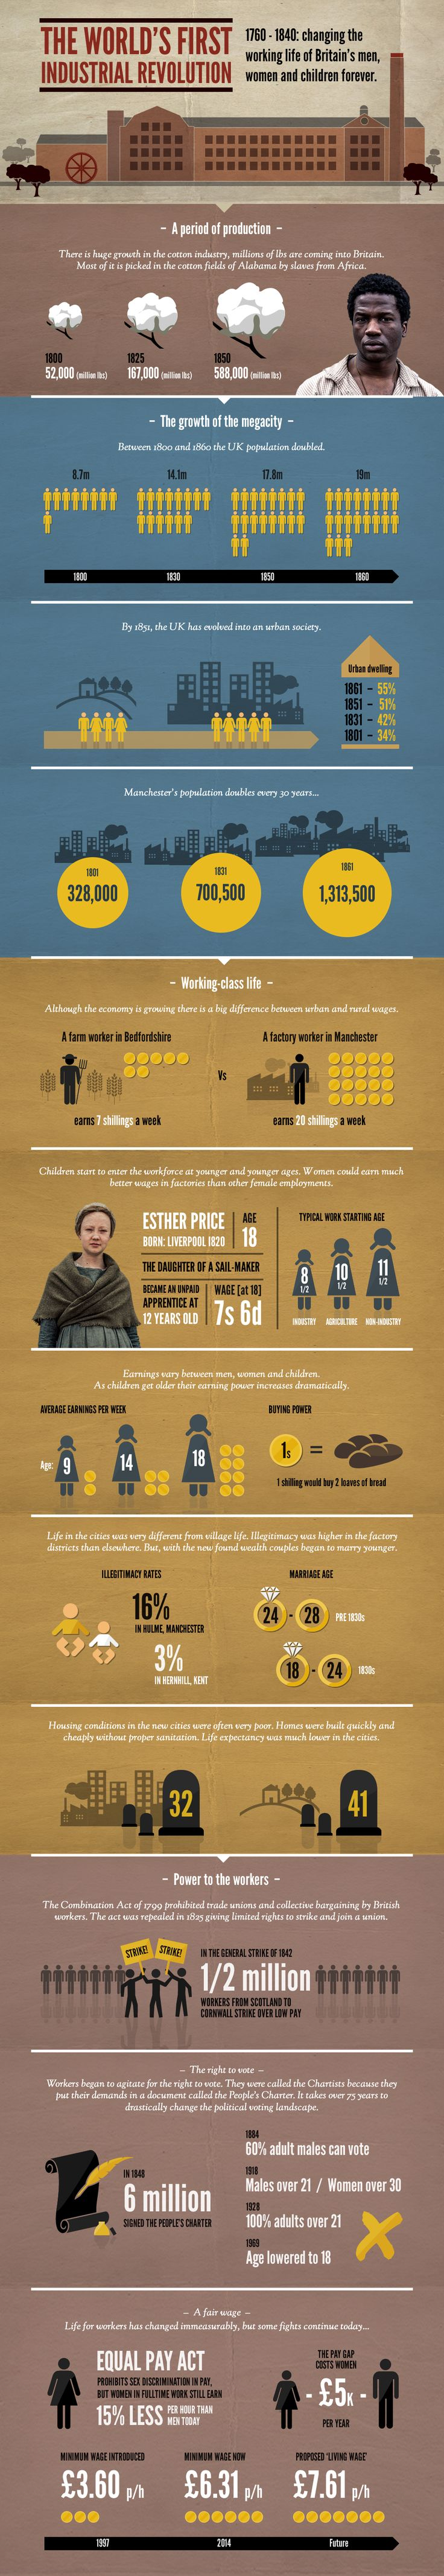 Infographic depicting facts and stats about live in the 1830s